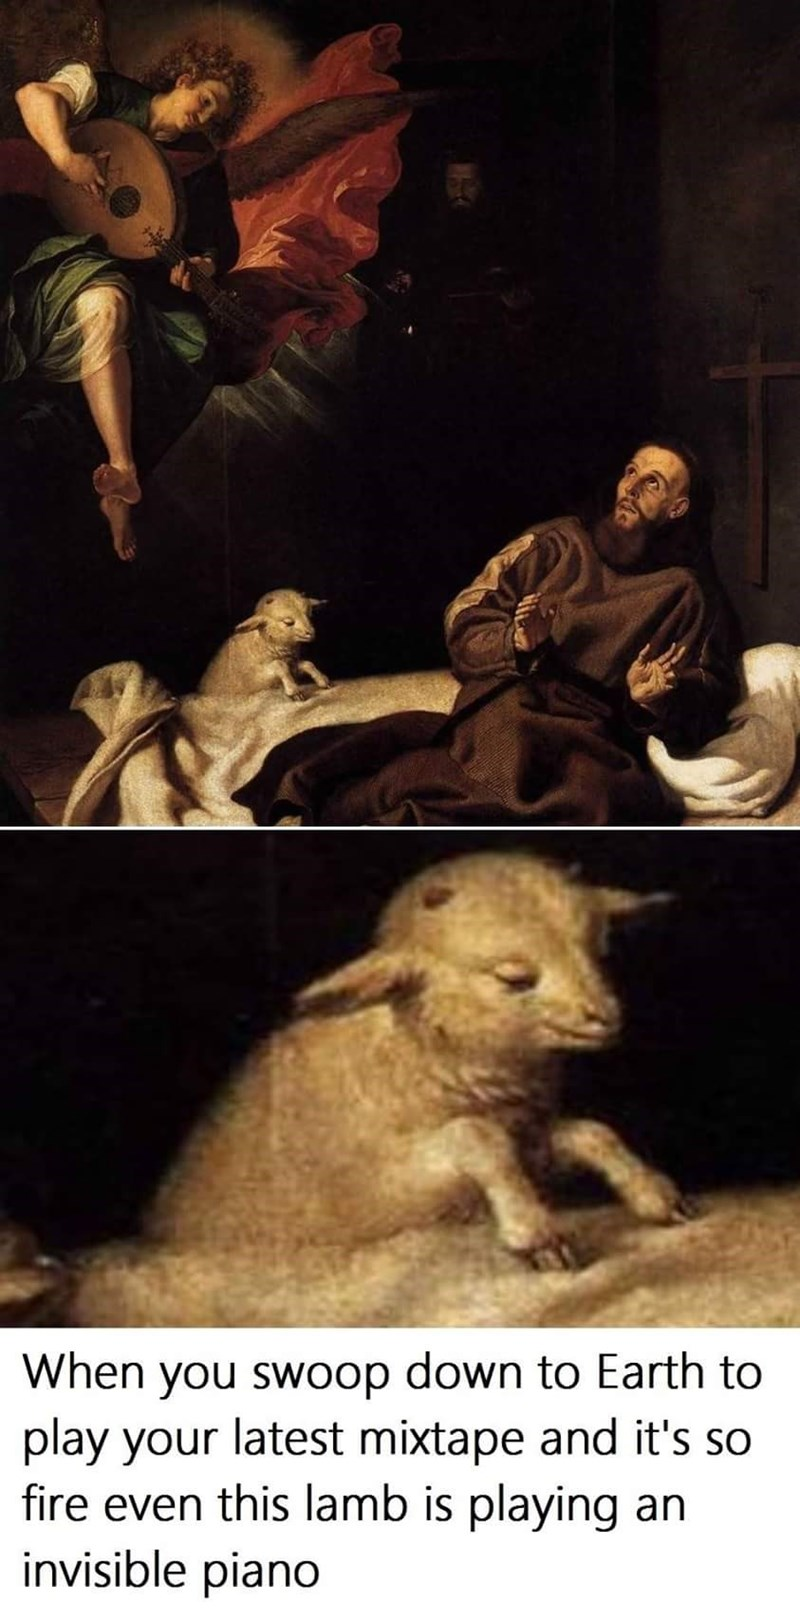 Human - When you swoop down to Earth to play your latest mixtape and it's so fire even this lamb is playing an invisible piano